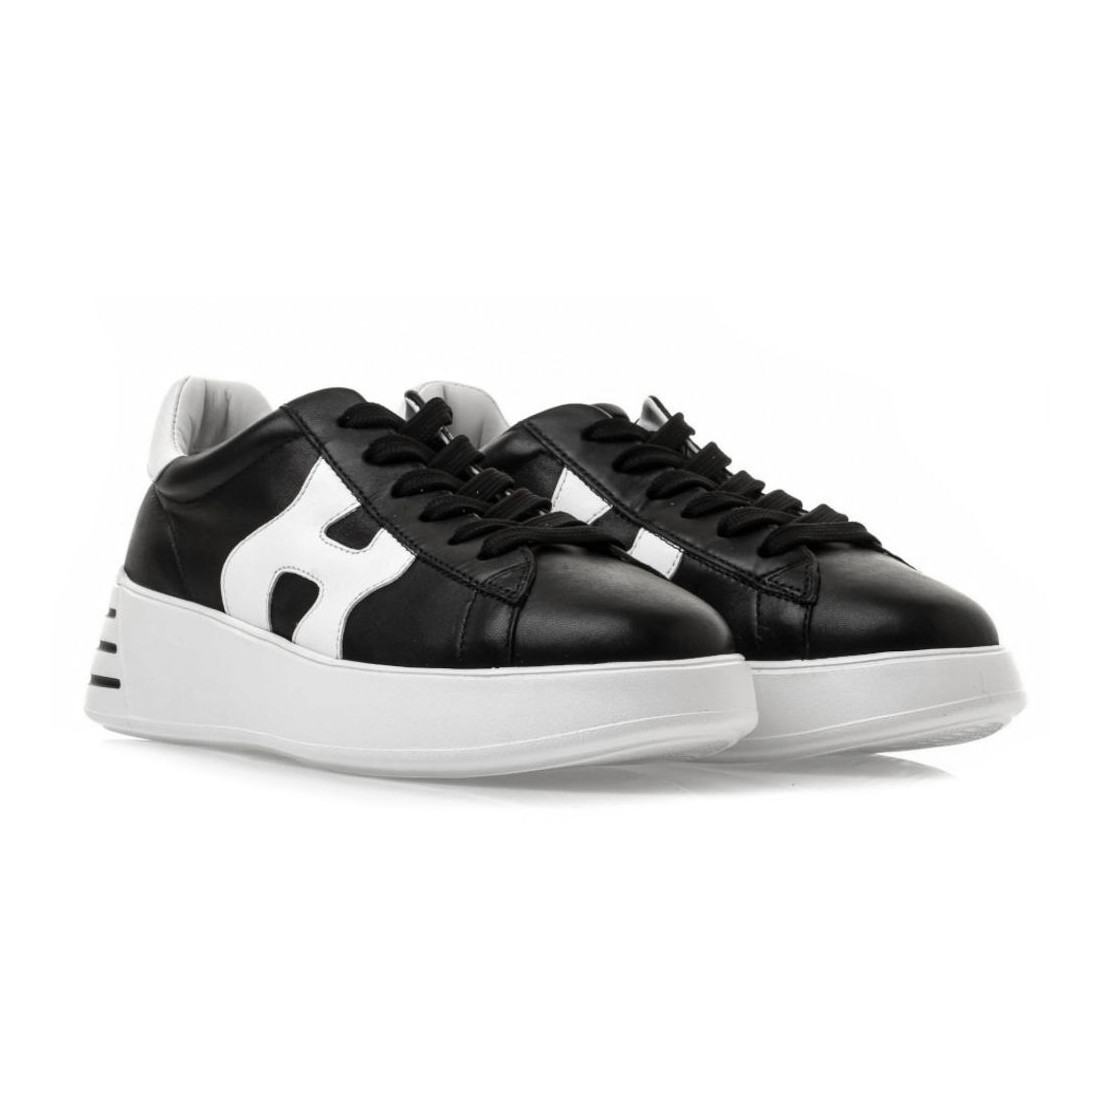 sneakers donna hogan hxw5640dn60ncr9999 8076